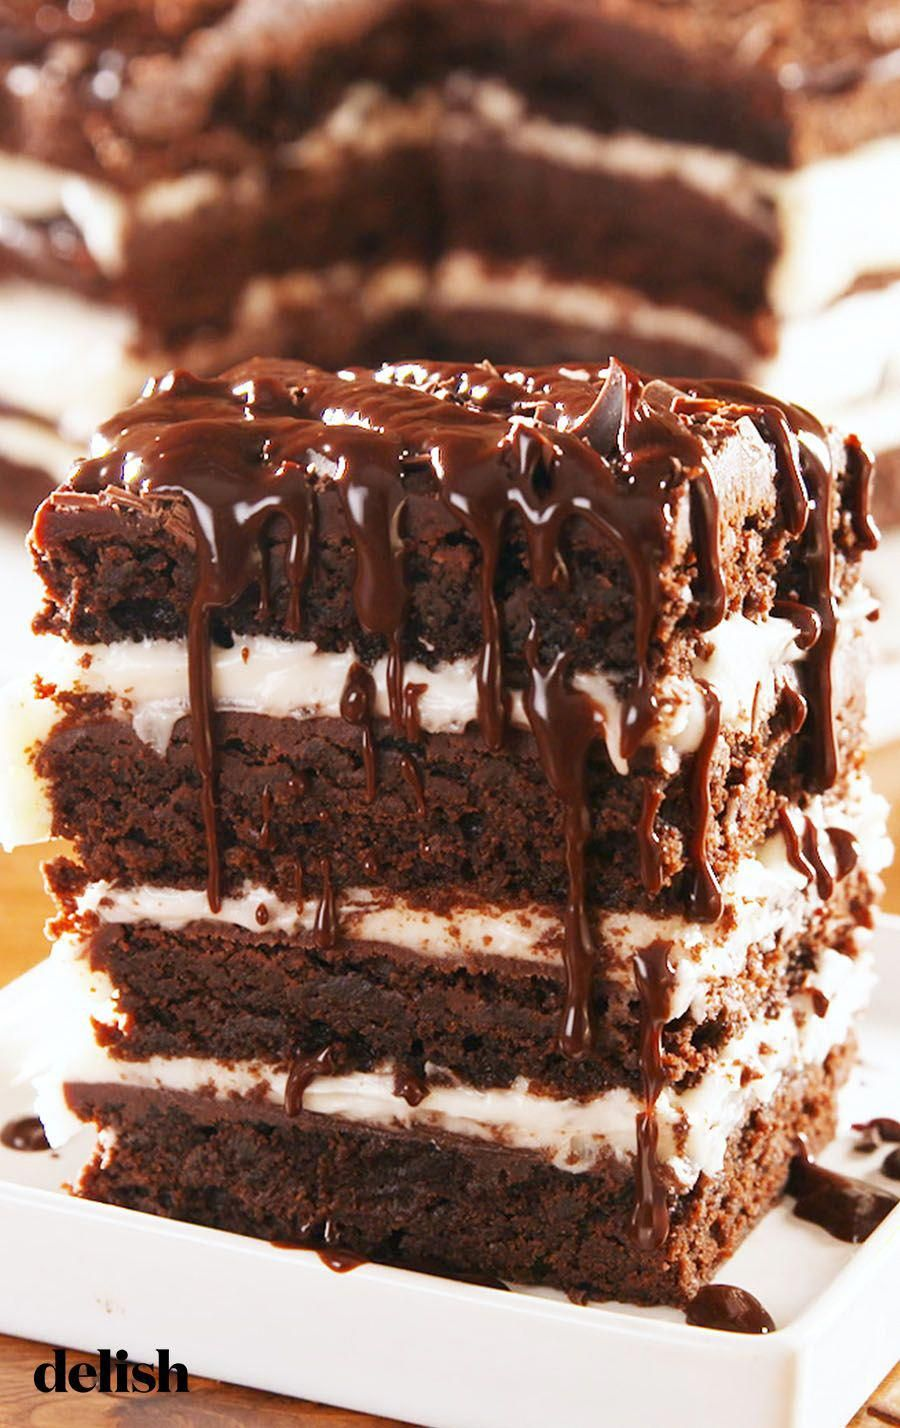 Brownie Lasagna is the most decadent dessert we've EVER made. Get the recipe at Delish.com. #recipe...